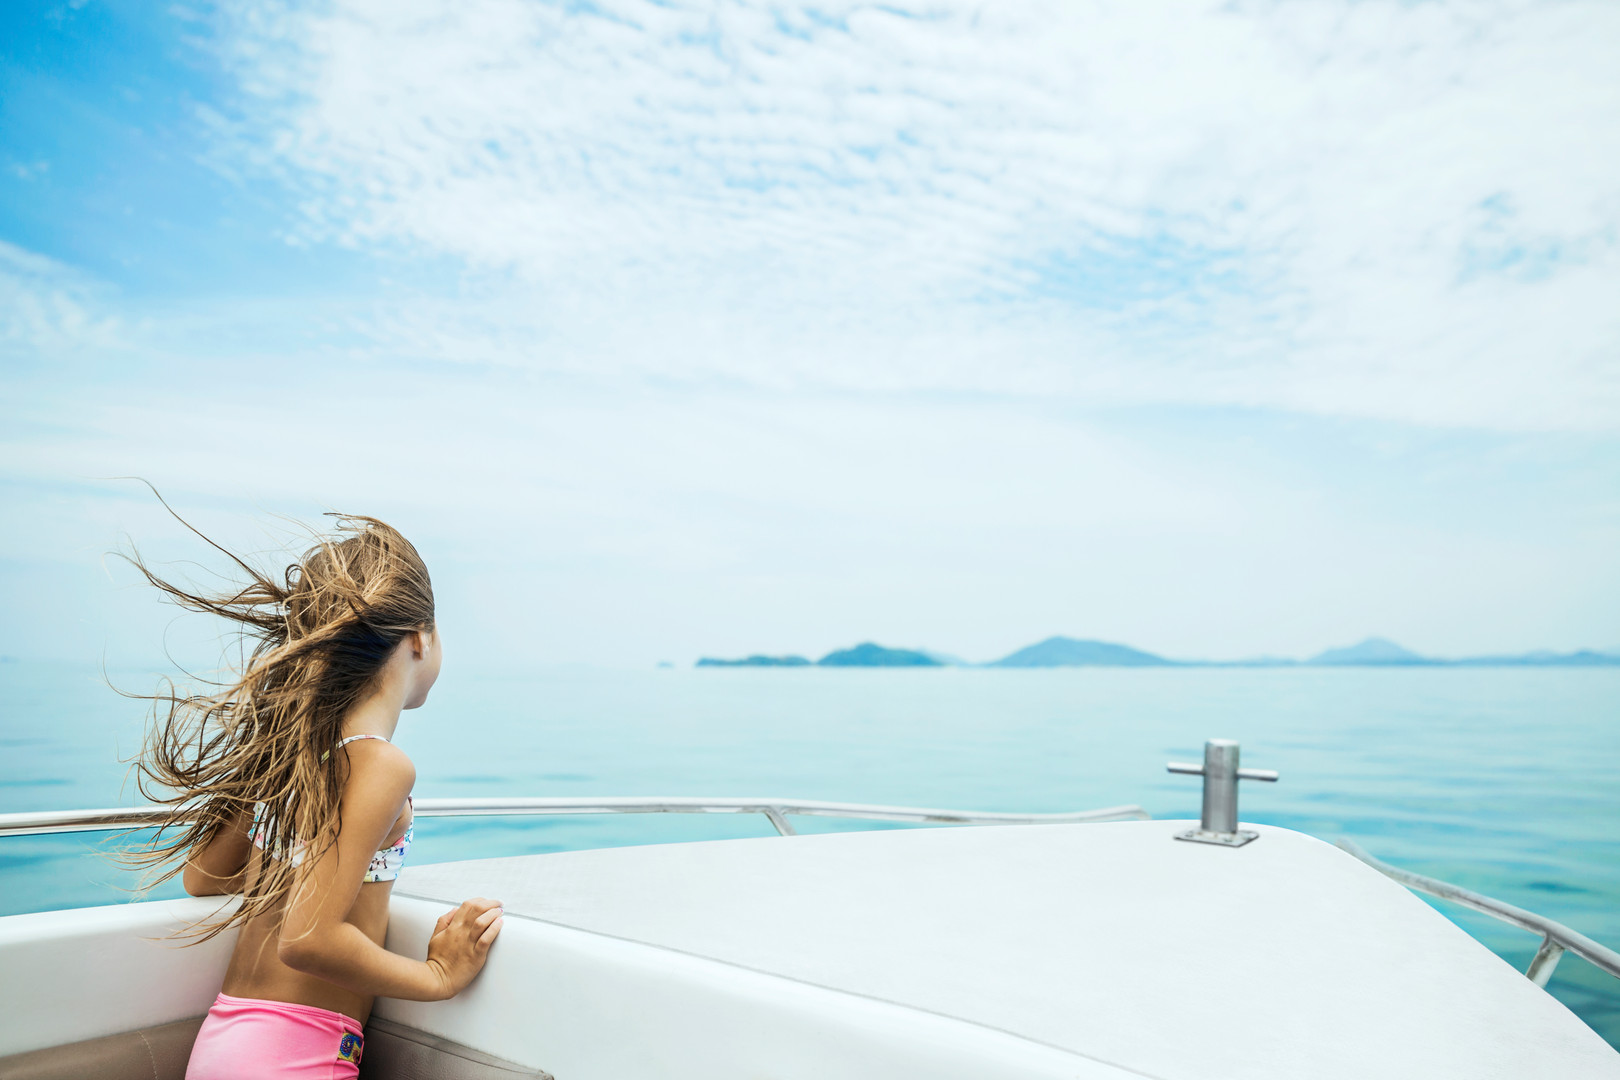 MTE COMO POINT YAMU - Lifestyle - Girl on a Speedboat